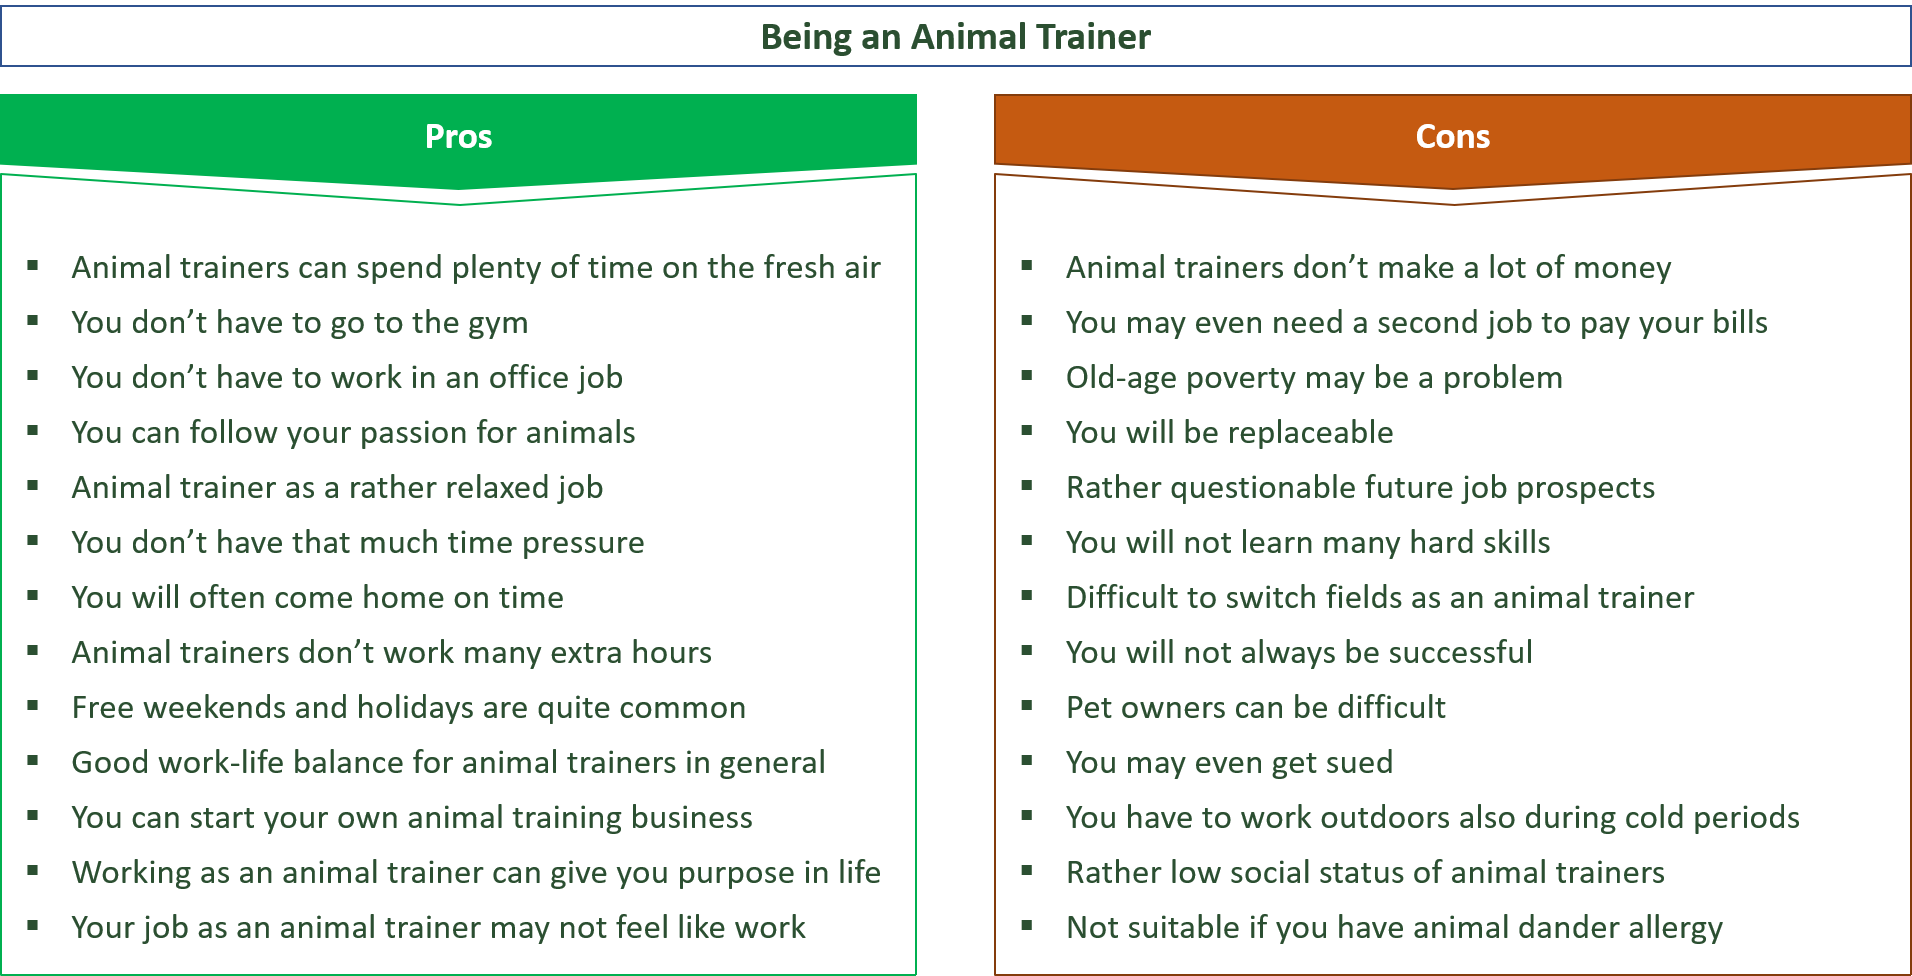 advantages and disadvantages of being an animal trainer